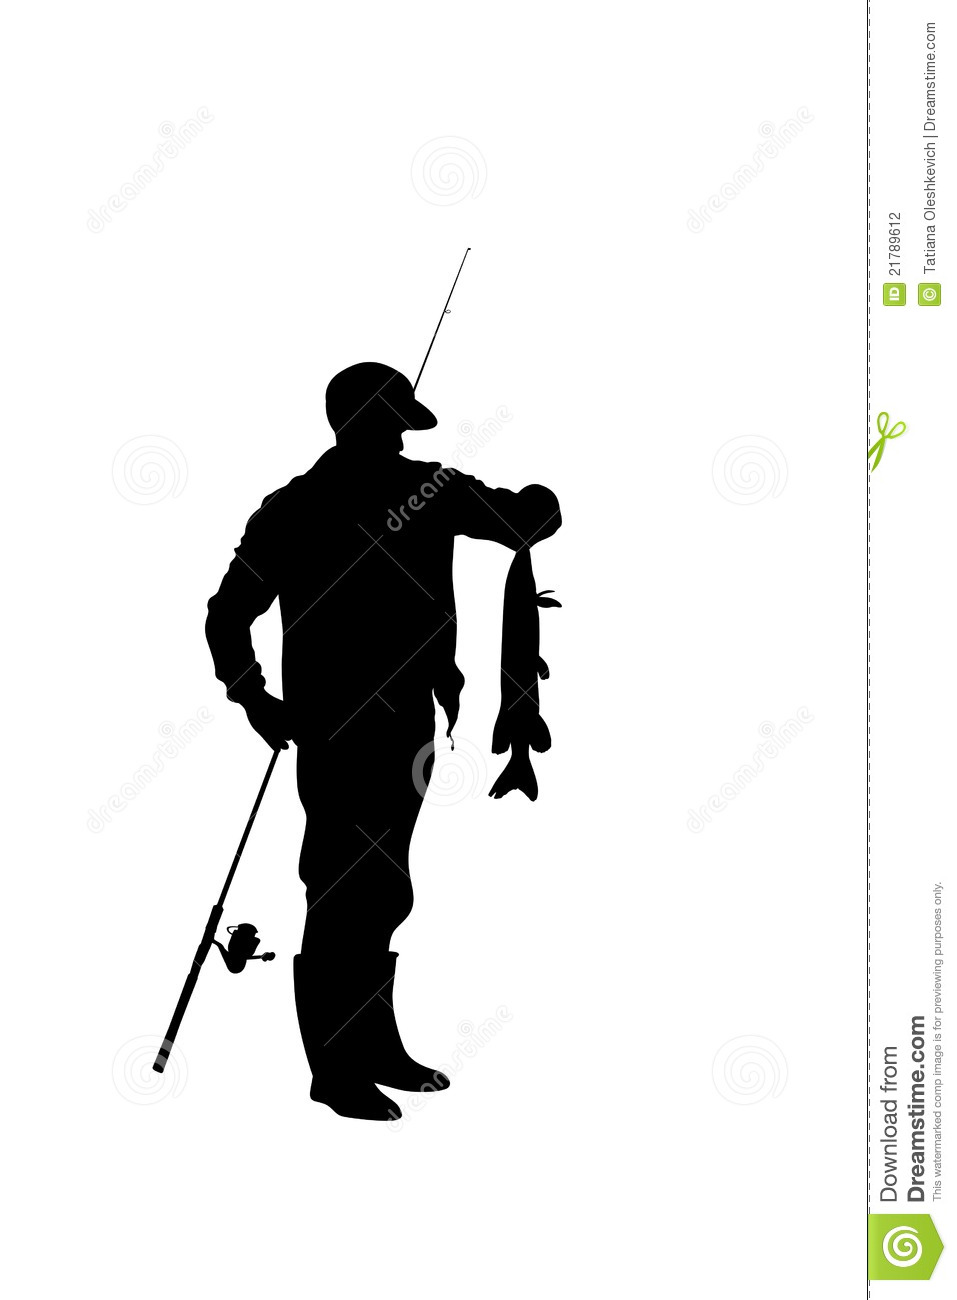 hight resolution of 957x1300 fisherman with catching fish clipart panda